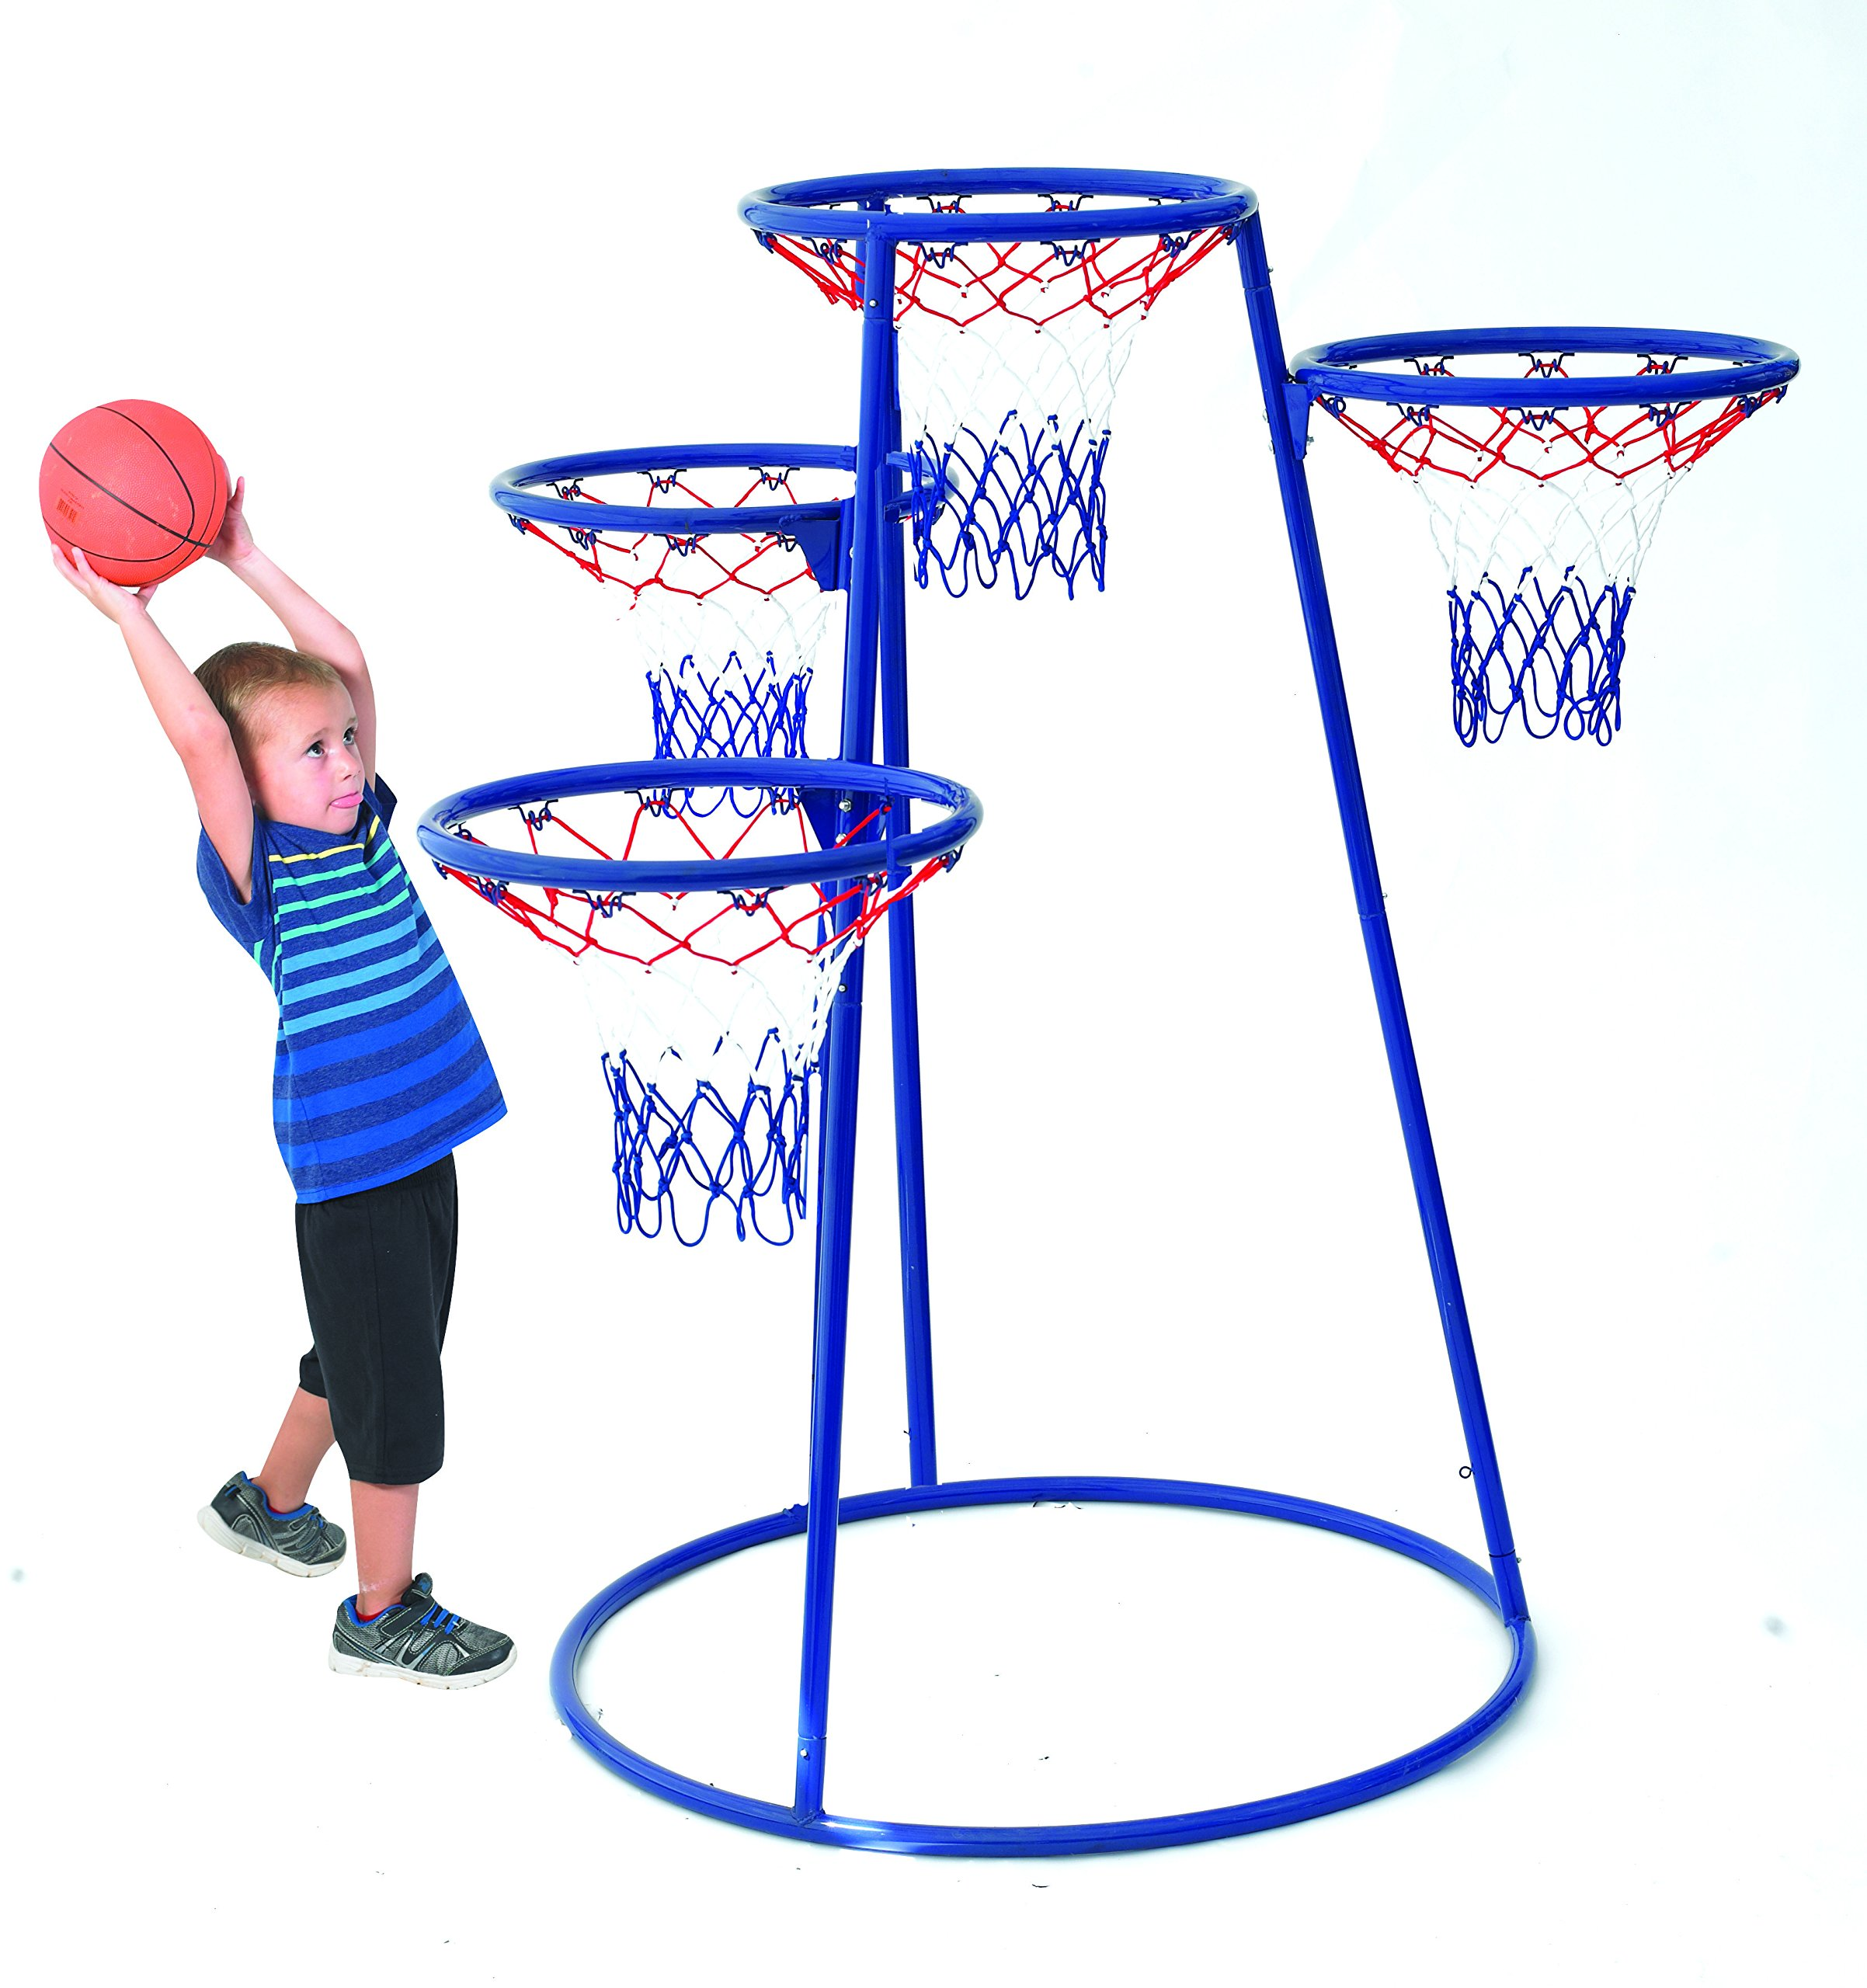 Angeles 4 Rings Basketball Stand with Storage Bag for Kids Active Play Toy (48 x 36 x 54 in) by Angeles (Image #2)